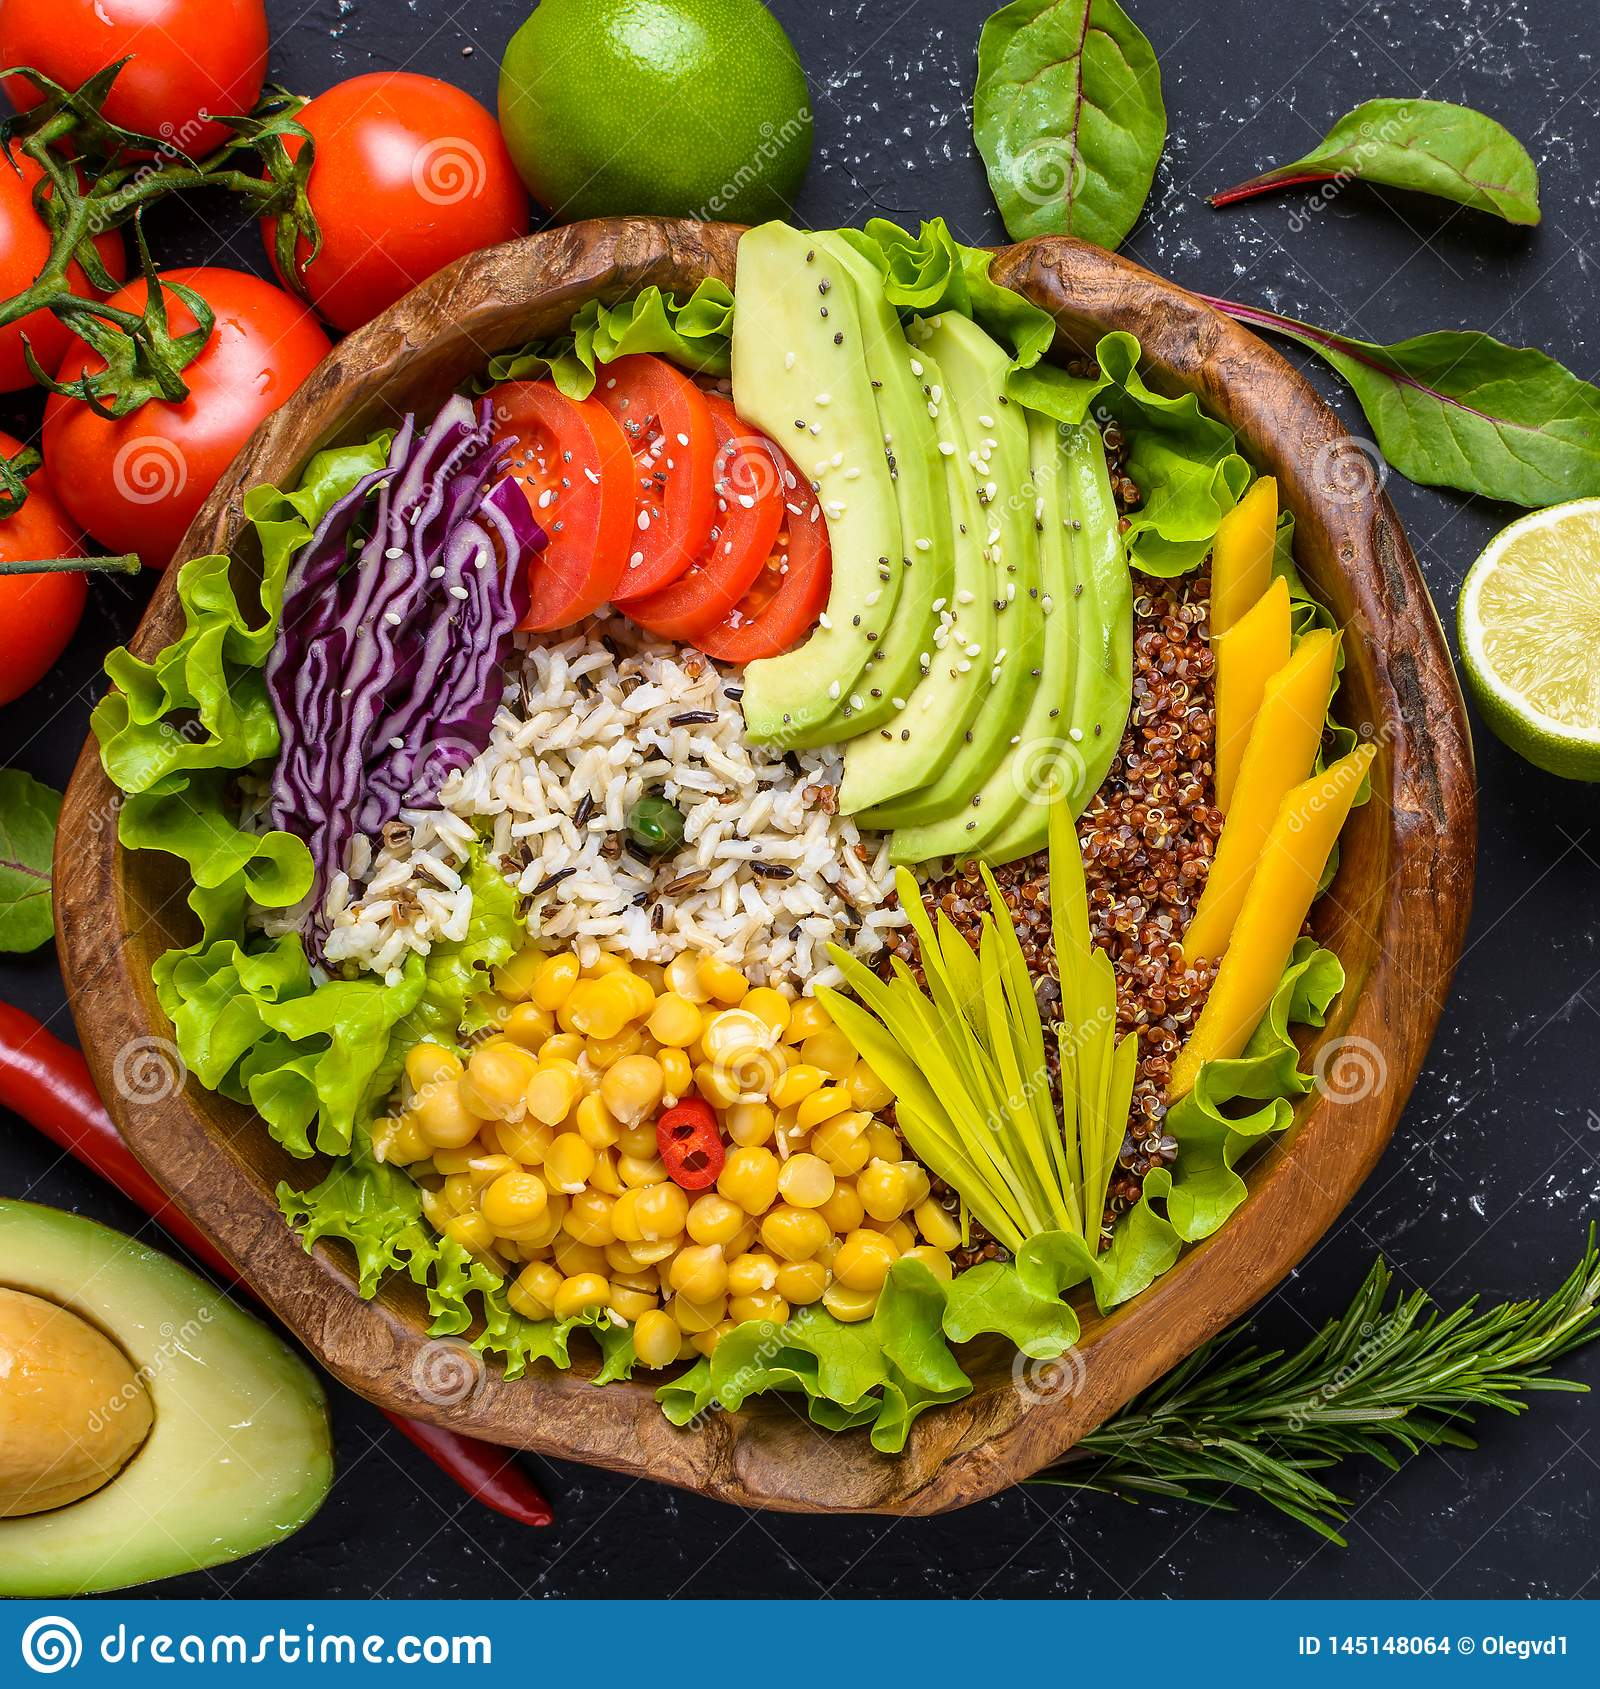 Healthy vegan superfood bowl with quinoa, wild rice, chickpea, tomatoes, avocado, greens, cabbage, lettuce on black stone